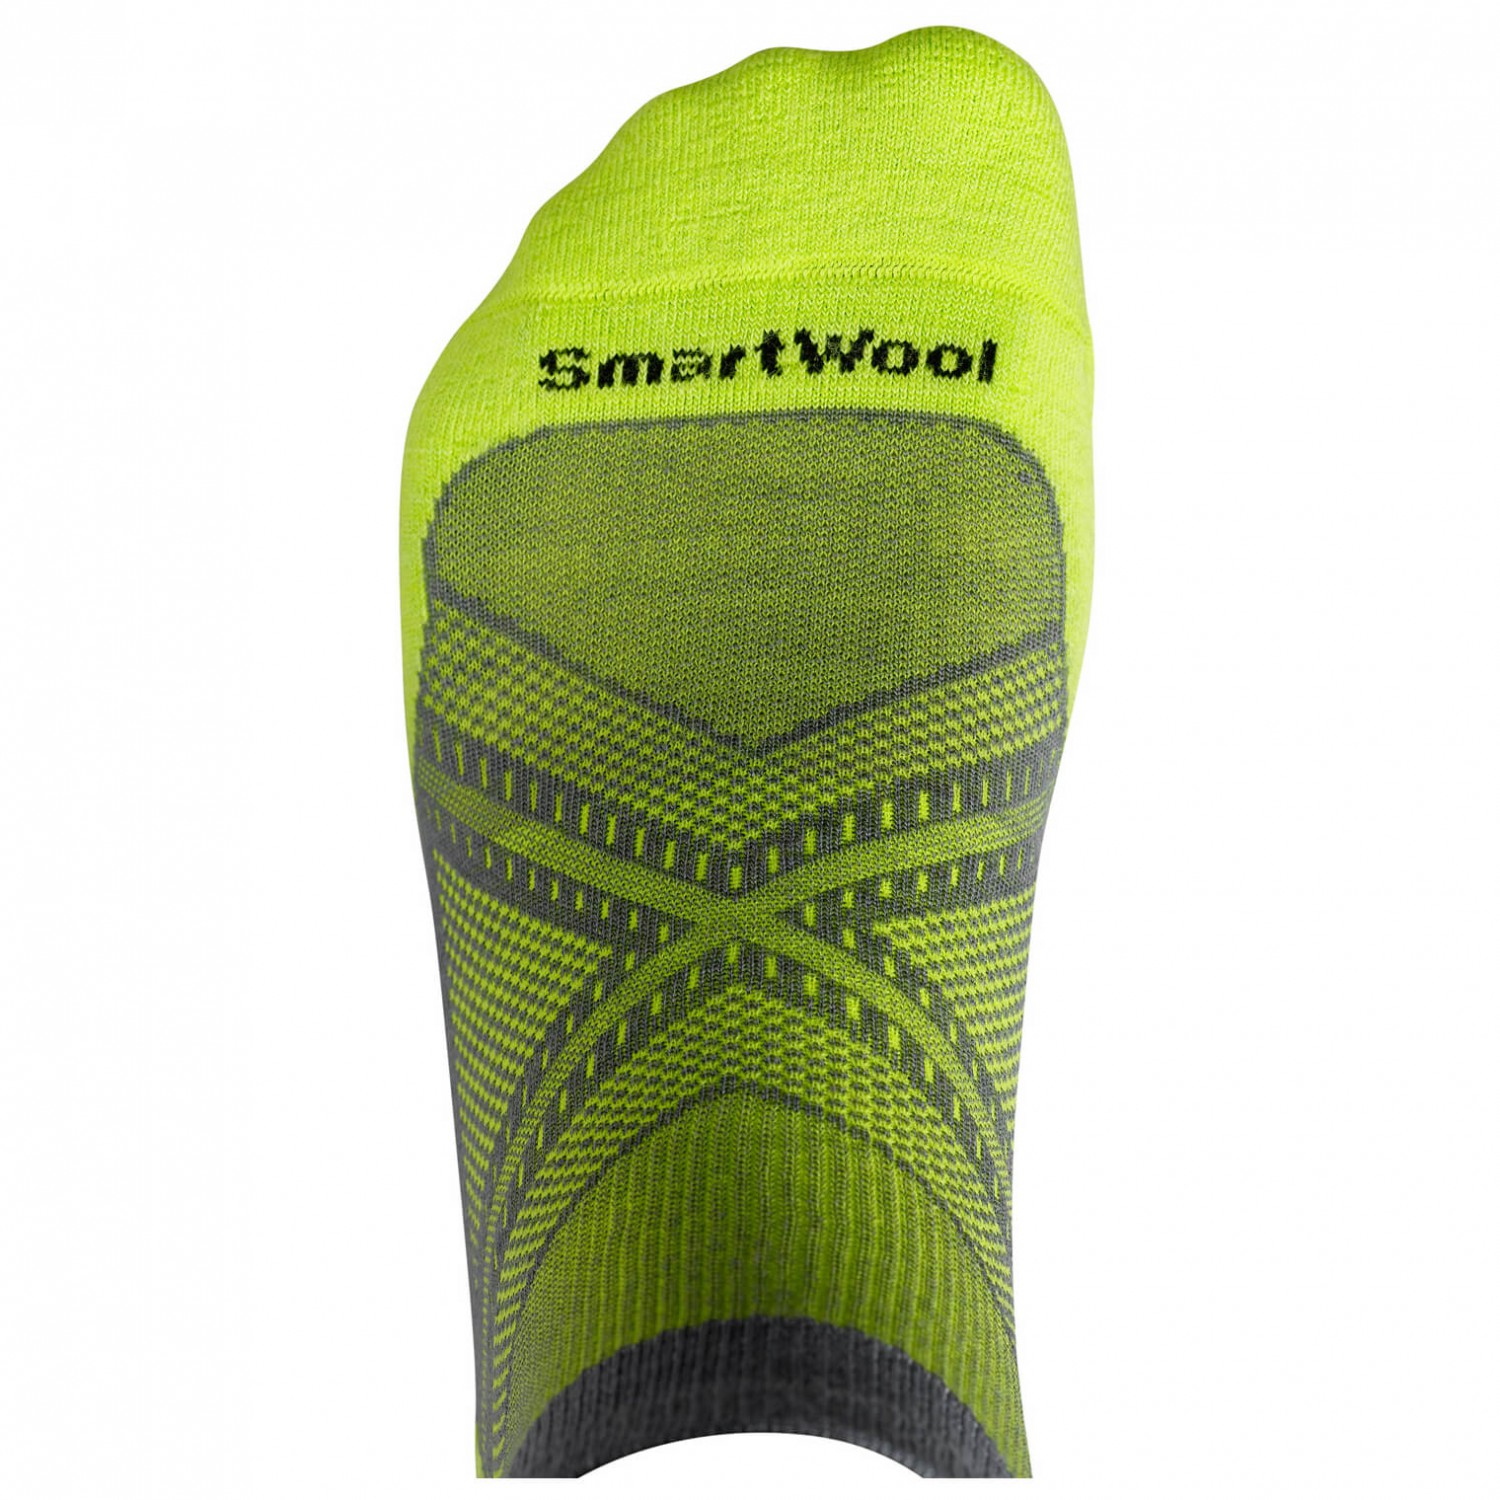 Get free shipping on our women's Smartwool Socks today! Treat yourself and look your best with our great selection of hosiery for women. Bare Necessities is the only online intimates retailer to offer certified Bra Fit Experts to its customers! Call ext 4. Each Bra Fit Expert holds two bra fit certifications, and are available to.